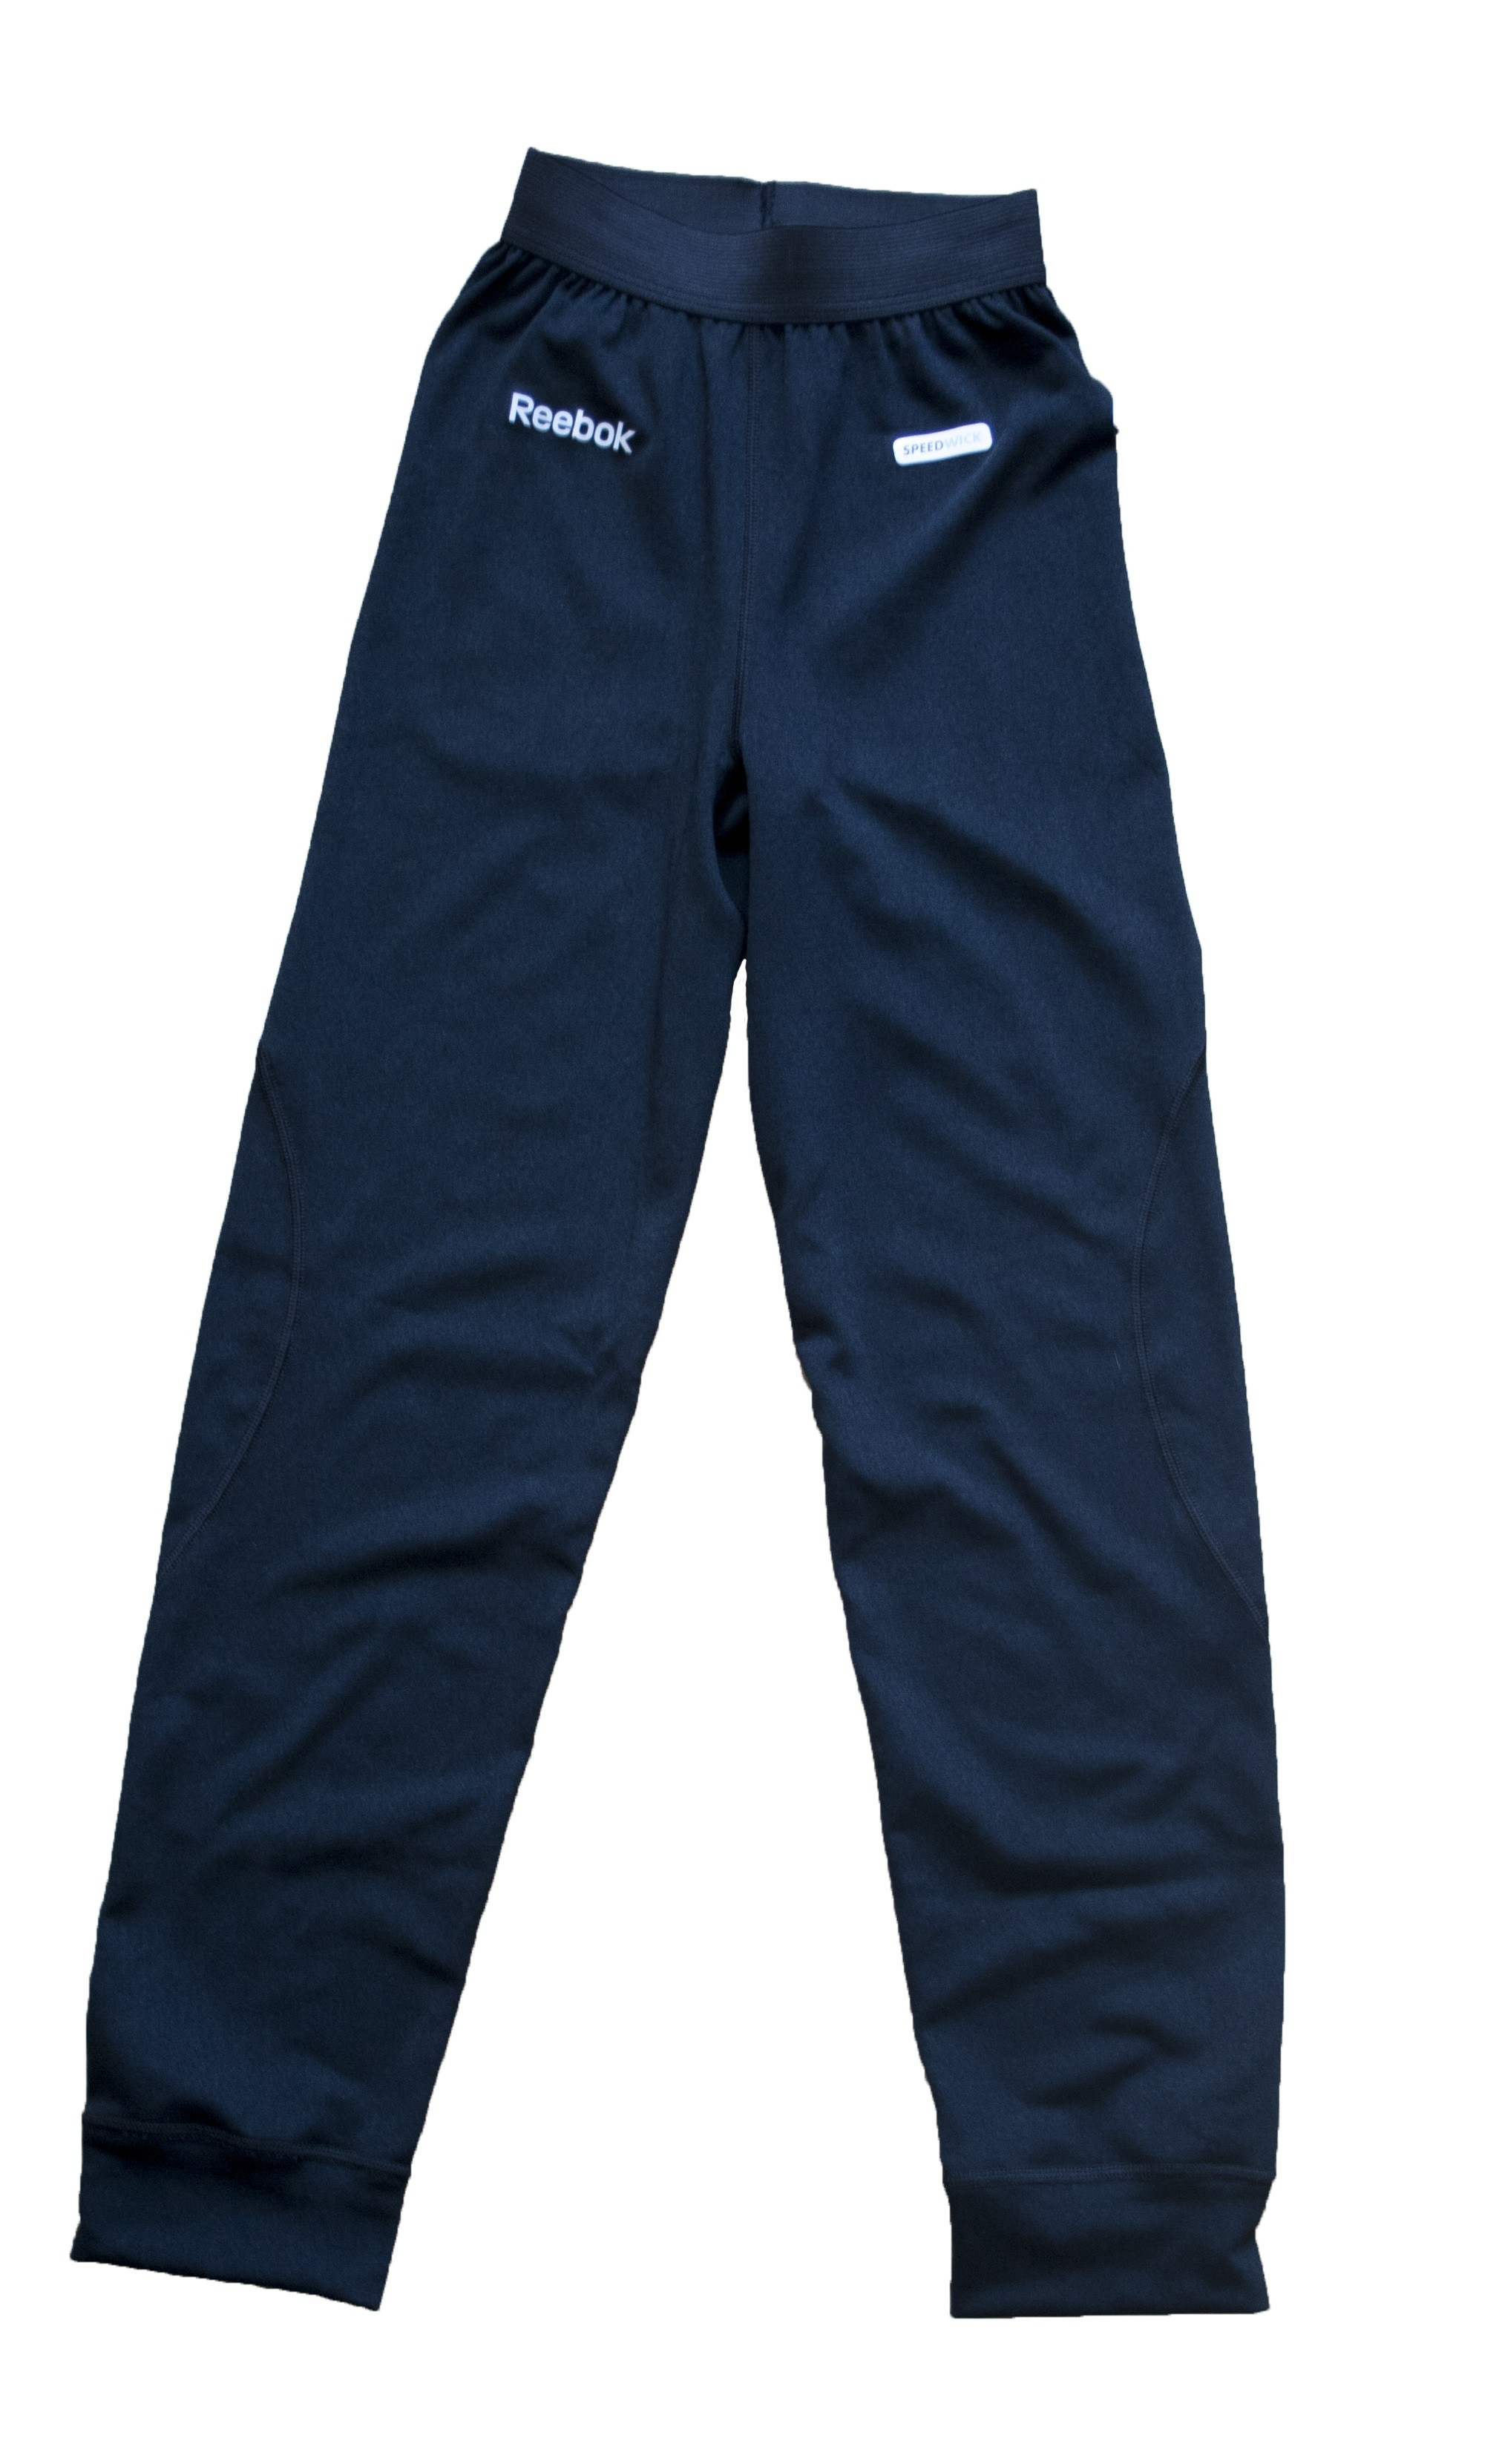 Reebok Speedwick Youth Compression Pants